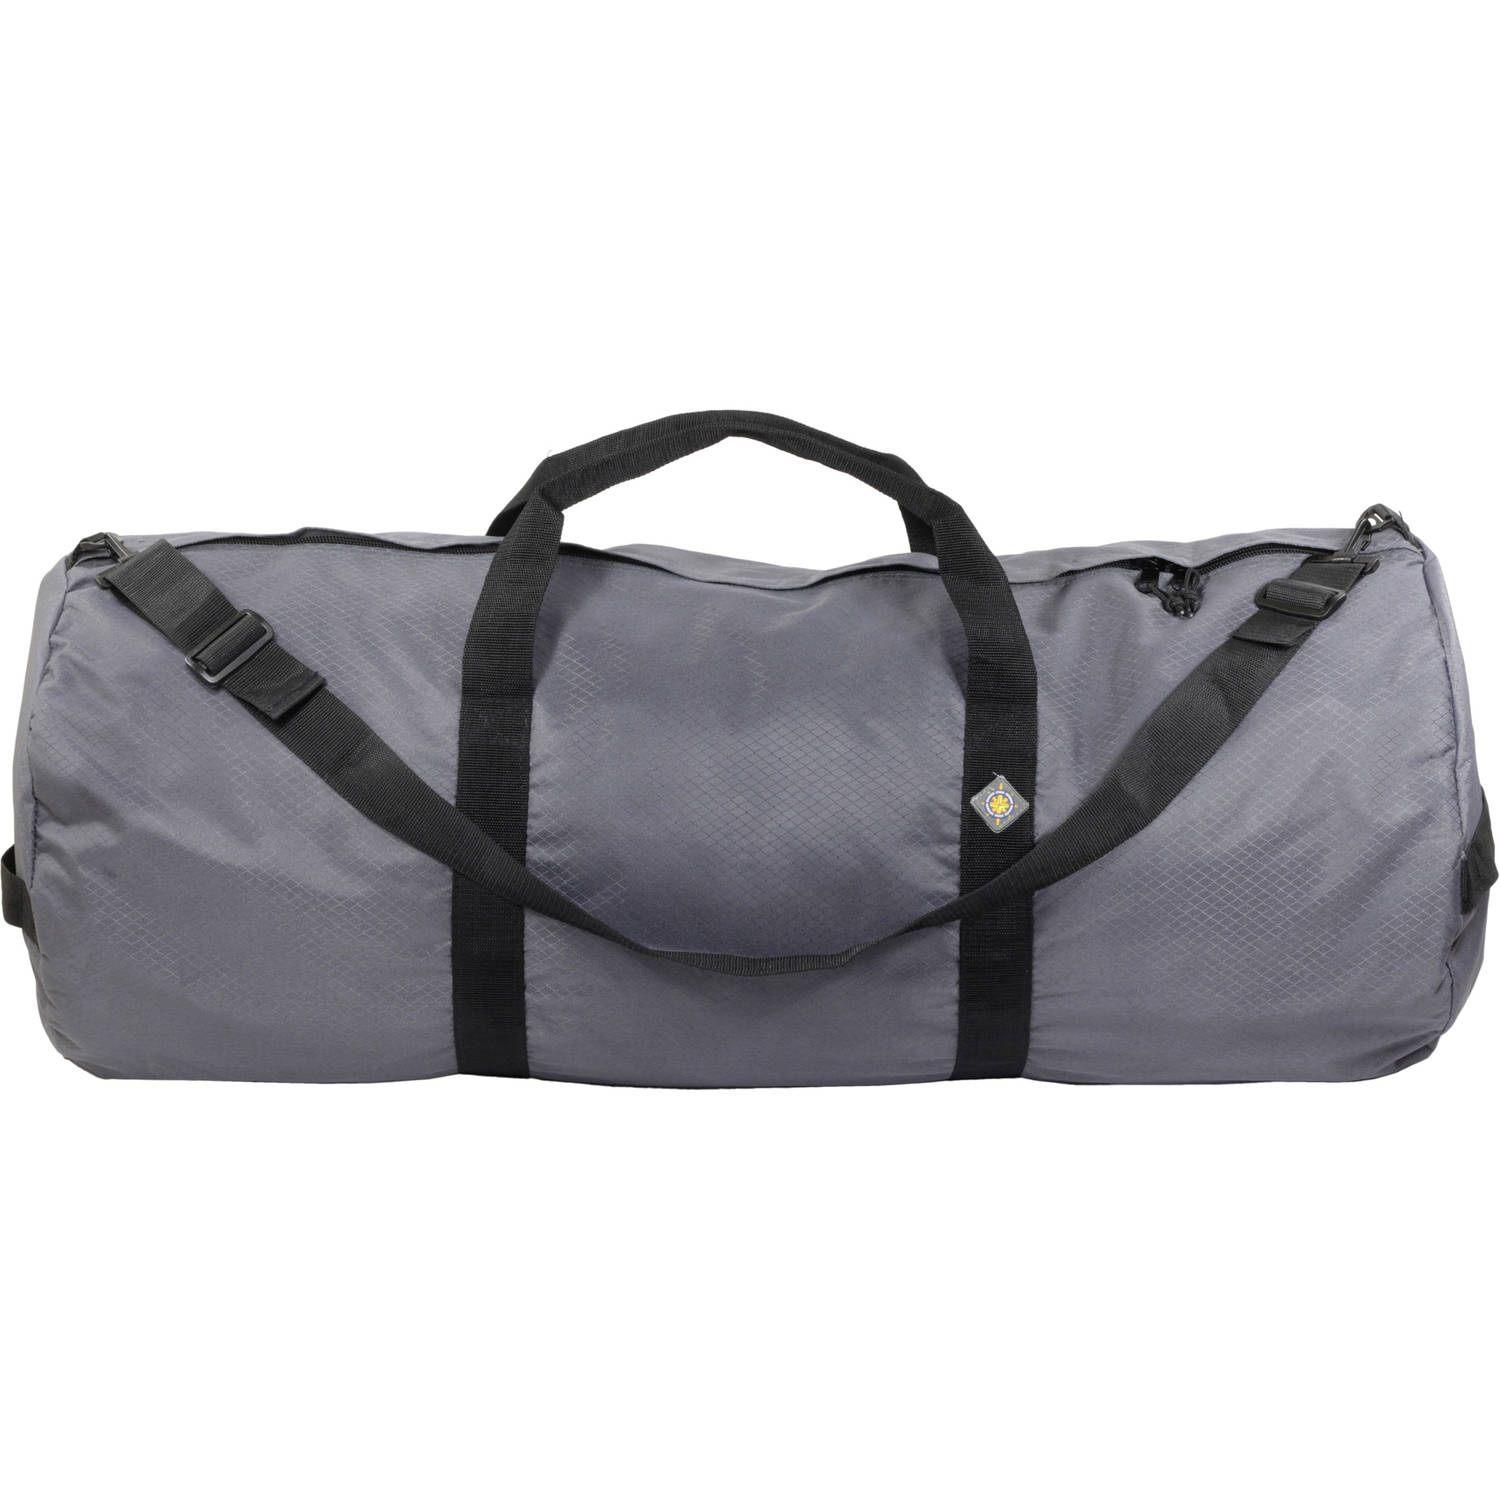 North Star SD 1640 Sport Duffle Bag, Steel Gray by Northstar Bags